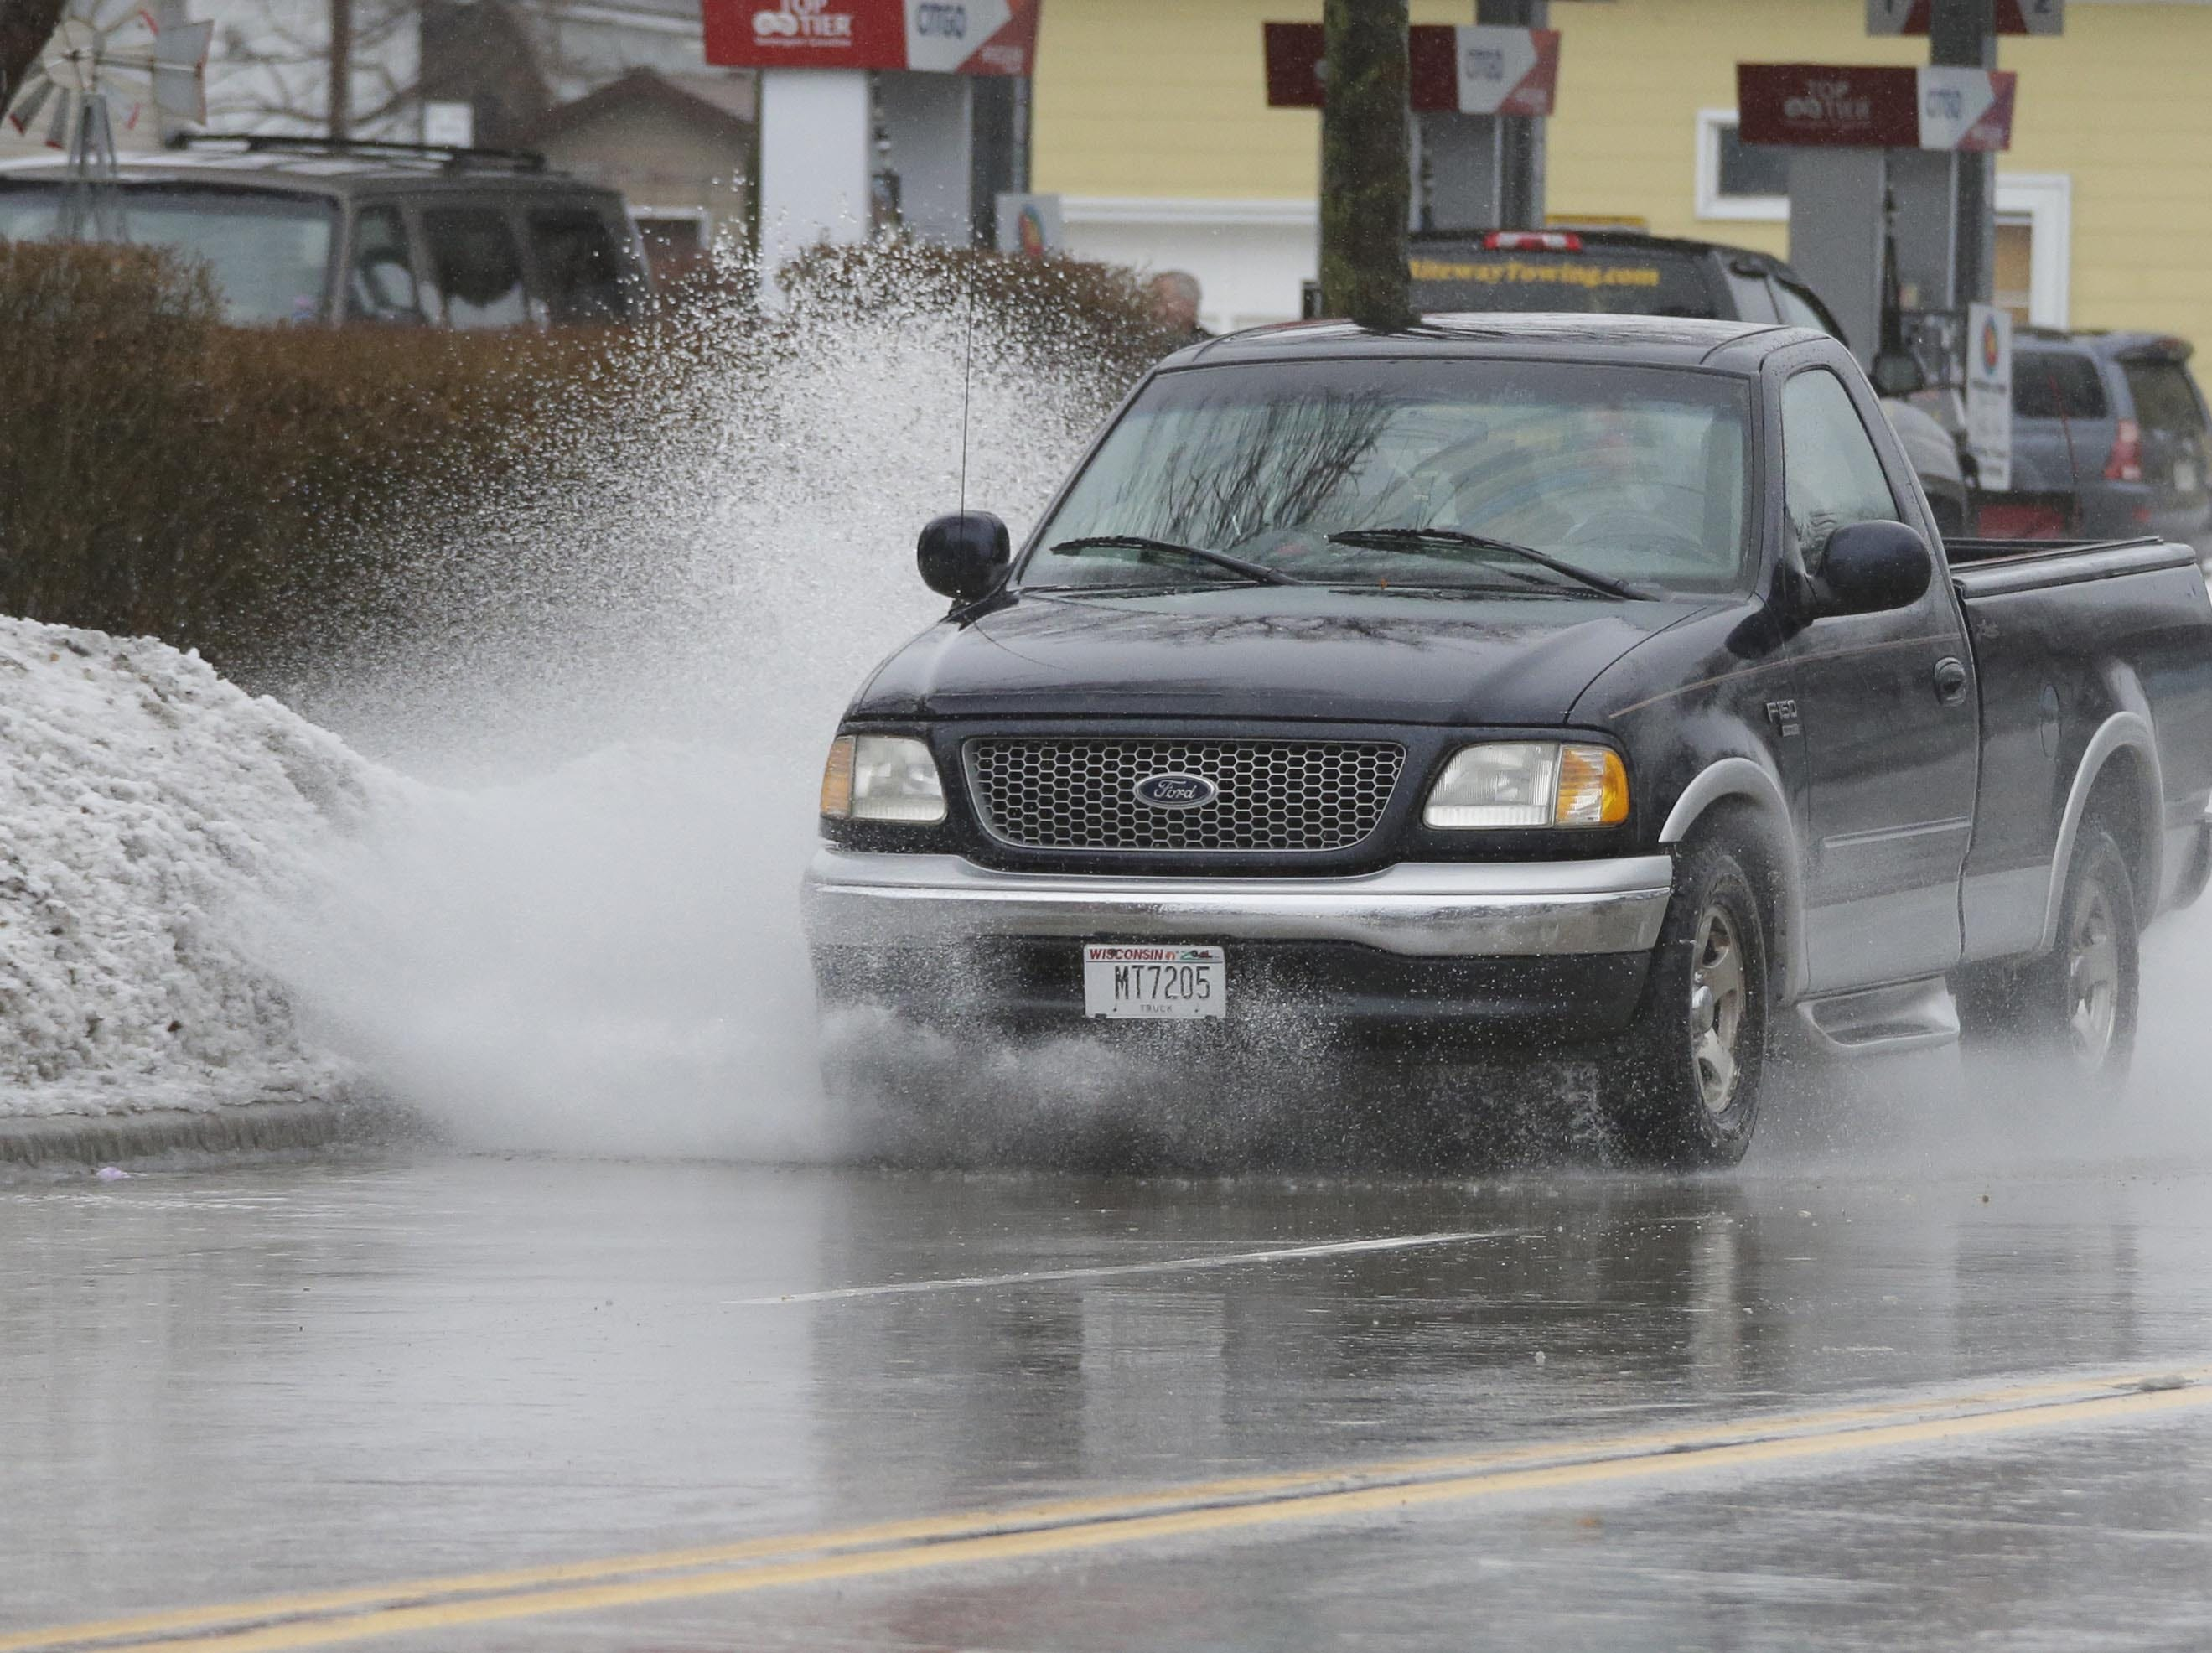 A pickup truck drives through standing water on South 14th Street, Tuesday, February 5, 2019, in Sheboygan, Wis. Early afternoon rain combined with frozen street drains caused localized flooding.